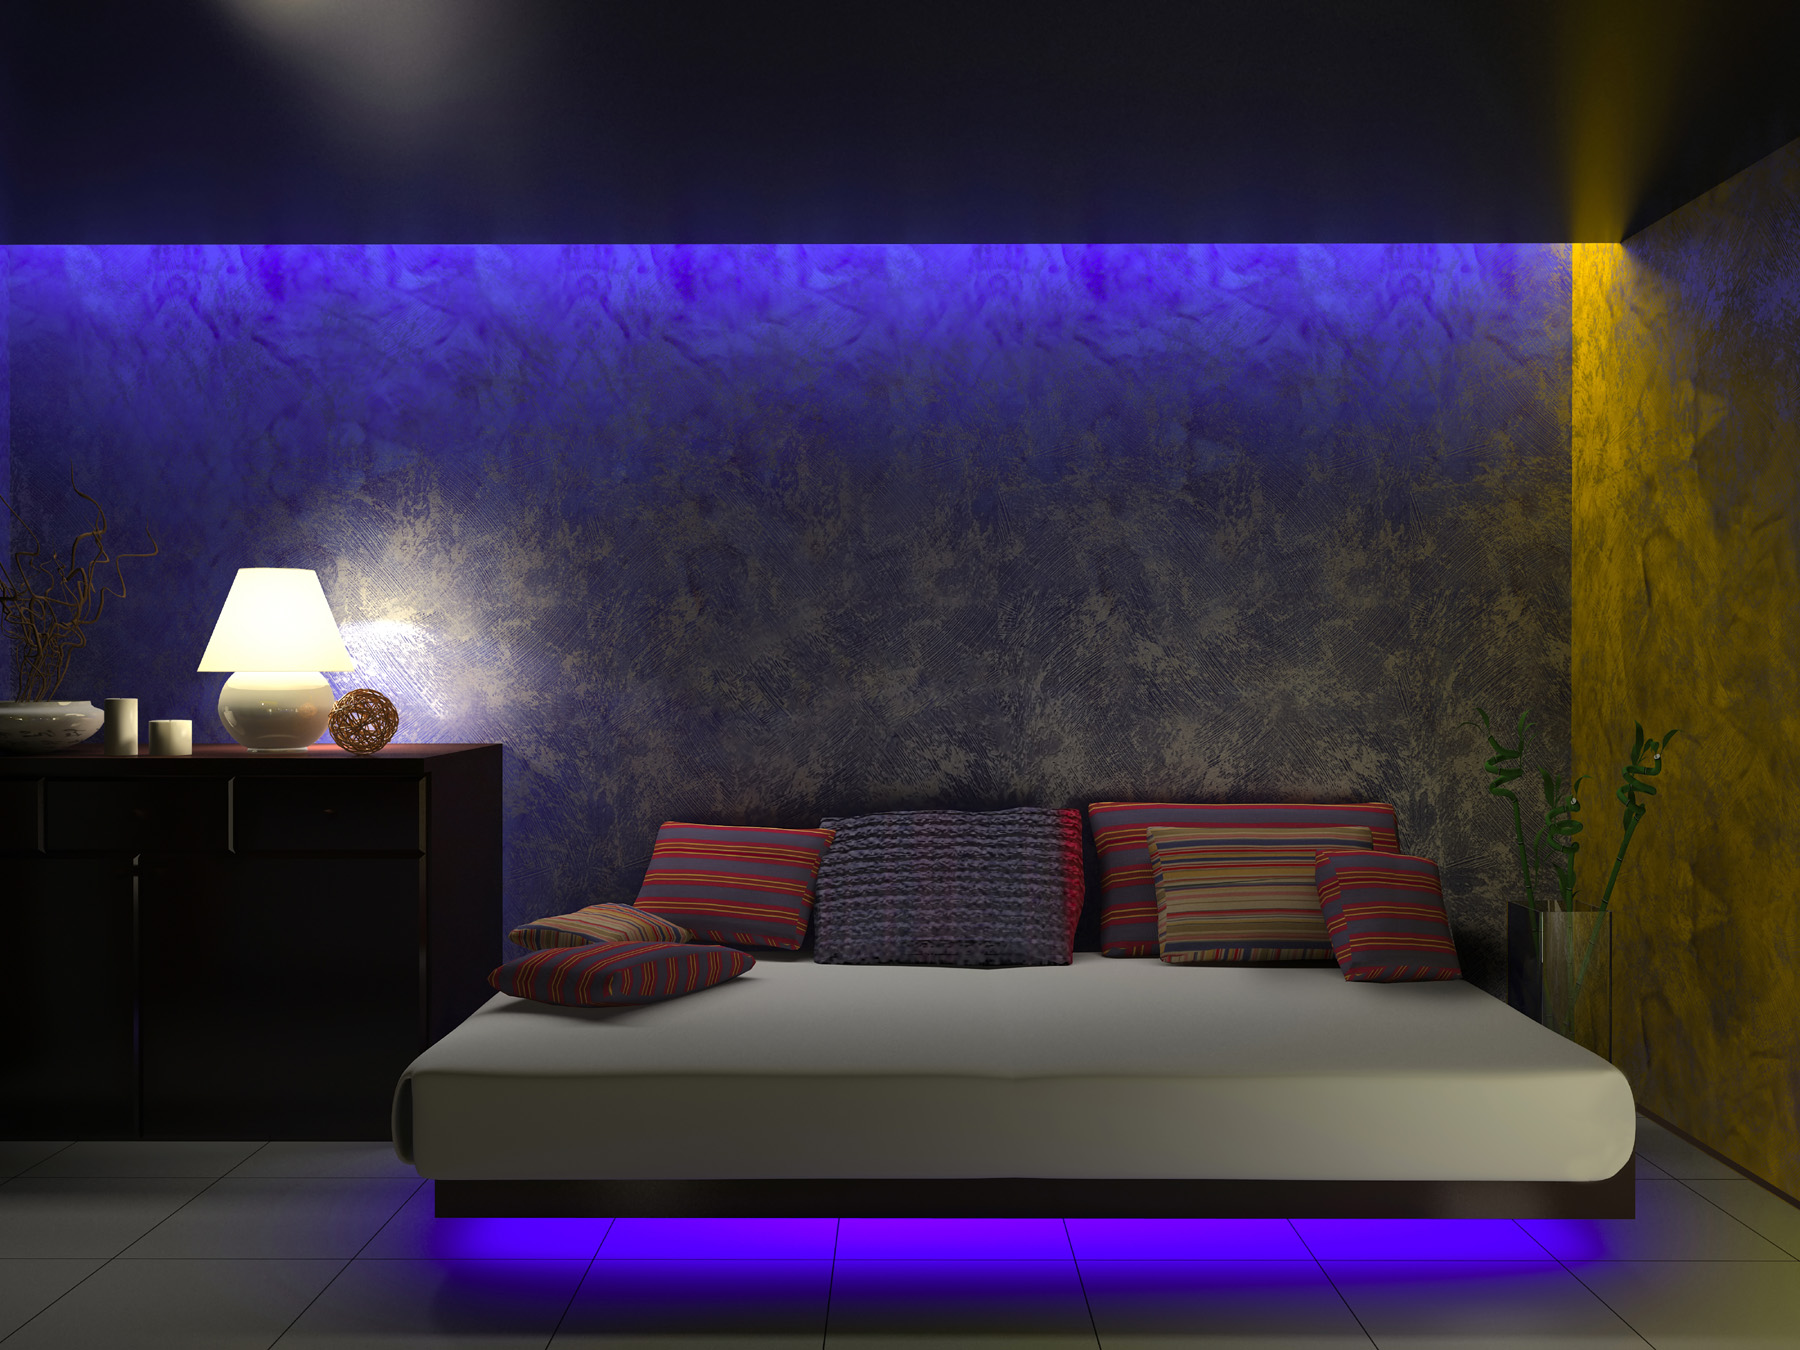 Blue light atmosphere bedroom interiors 51945